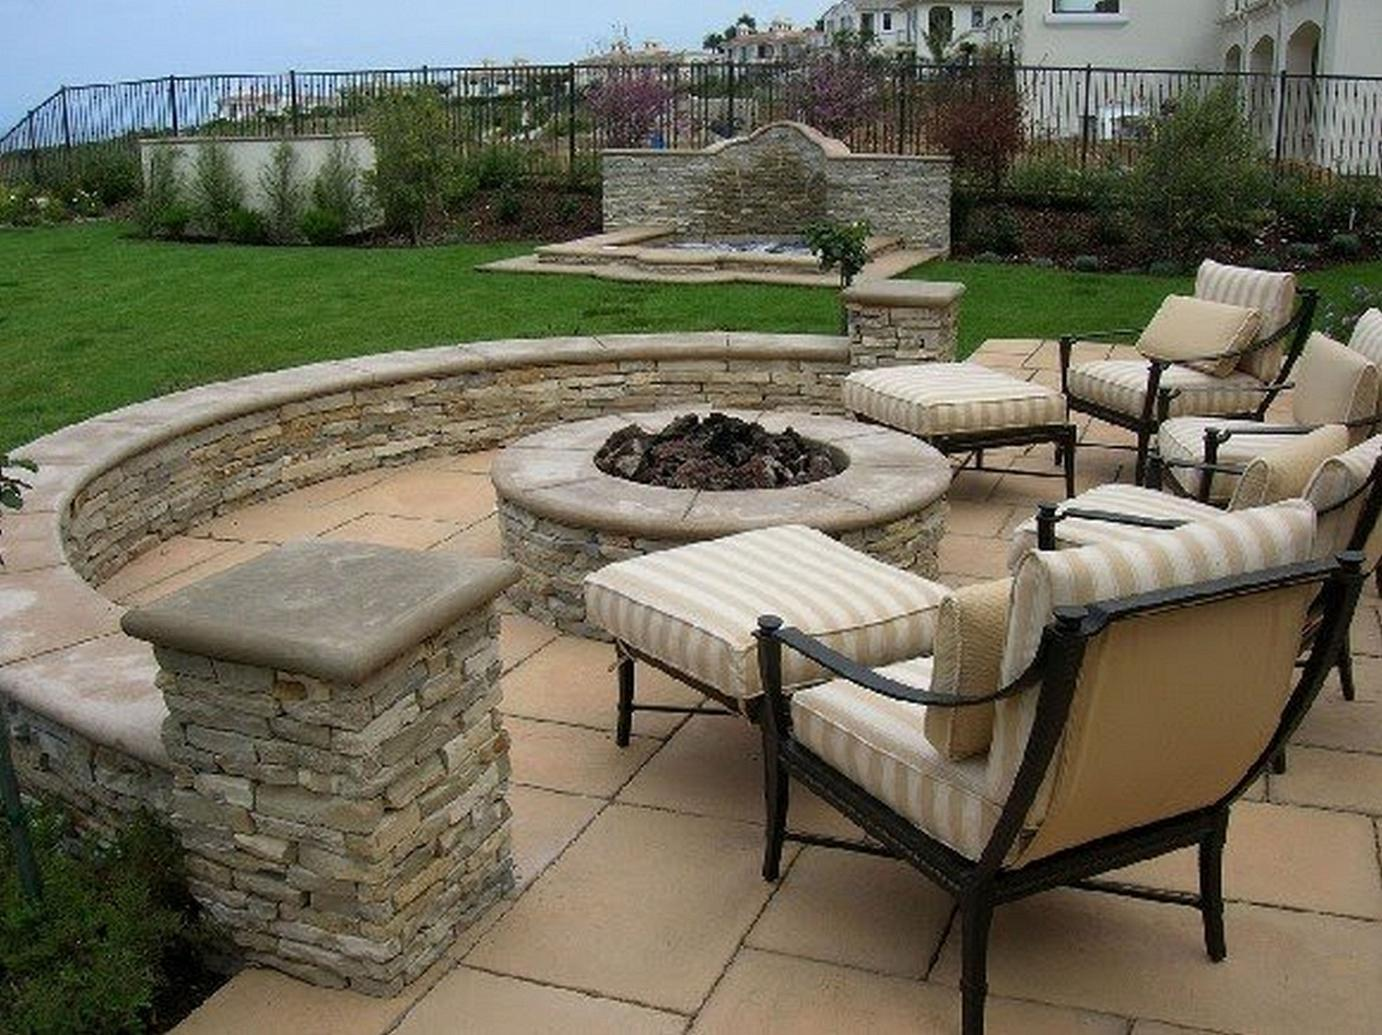 Backyard patio ideas for small spaces large and Outdoor patio ideas for small spaces